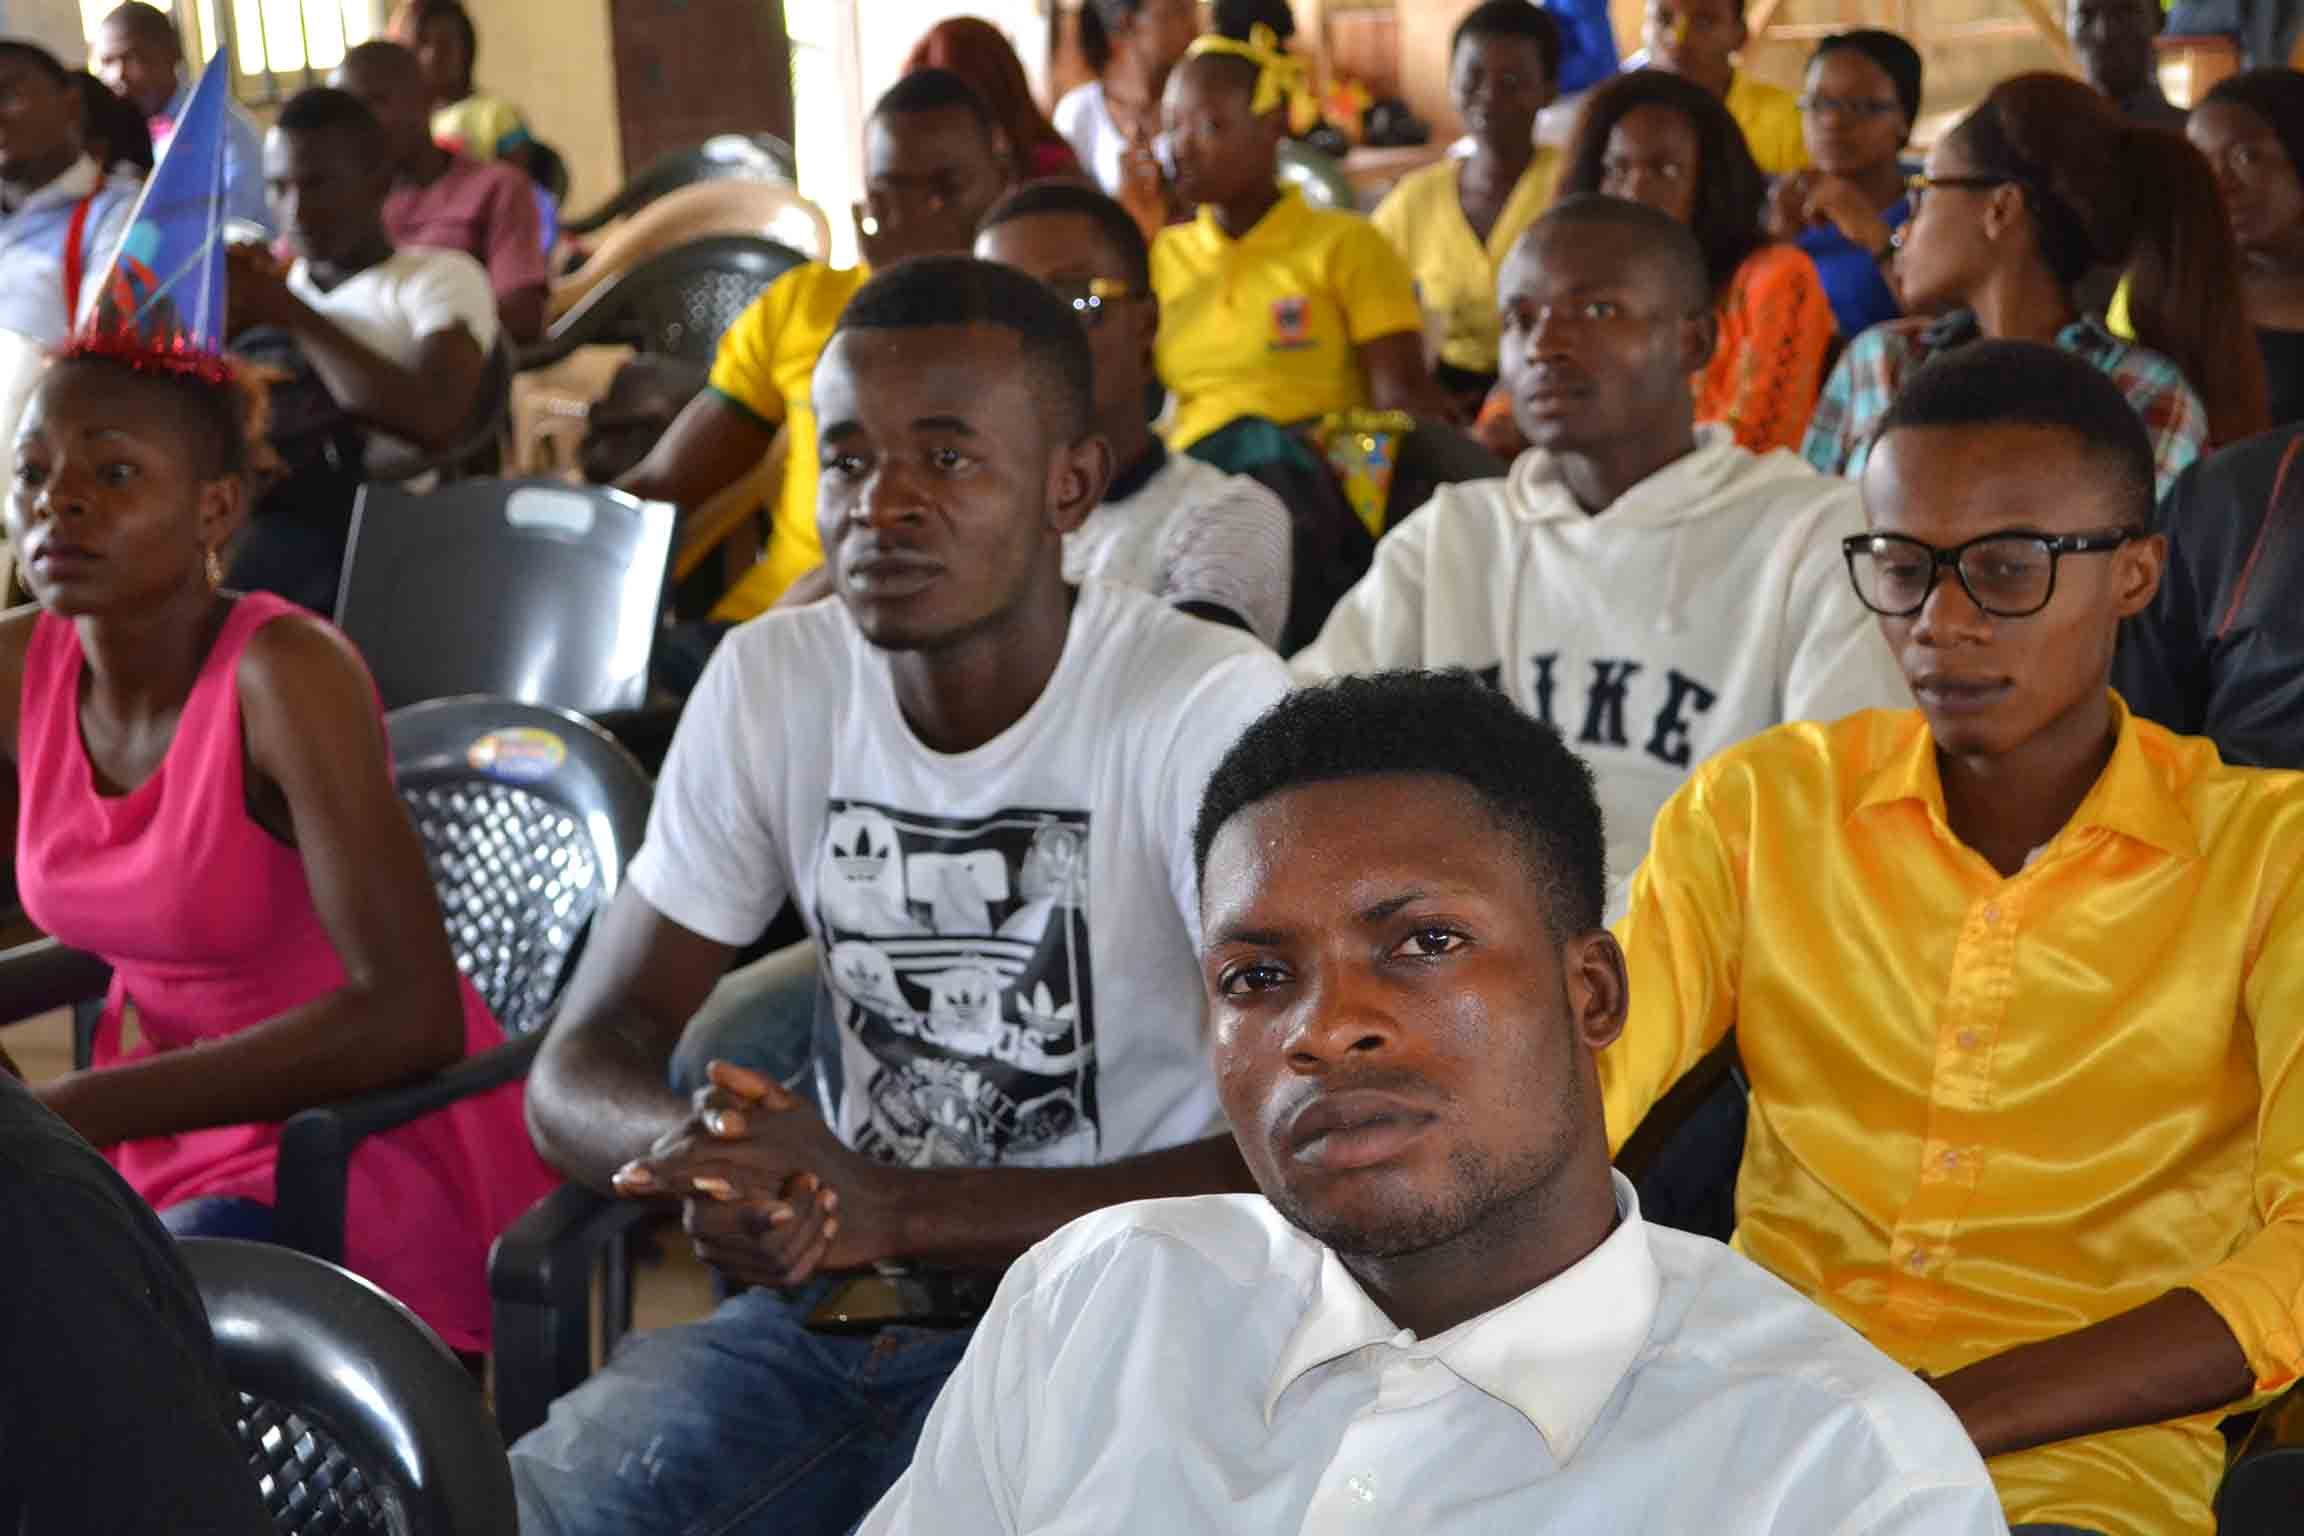 A cross-section of the members of the audience